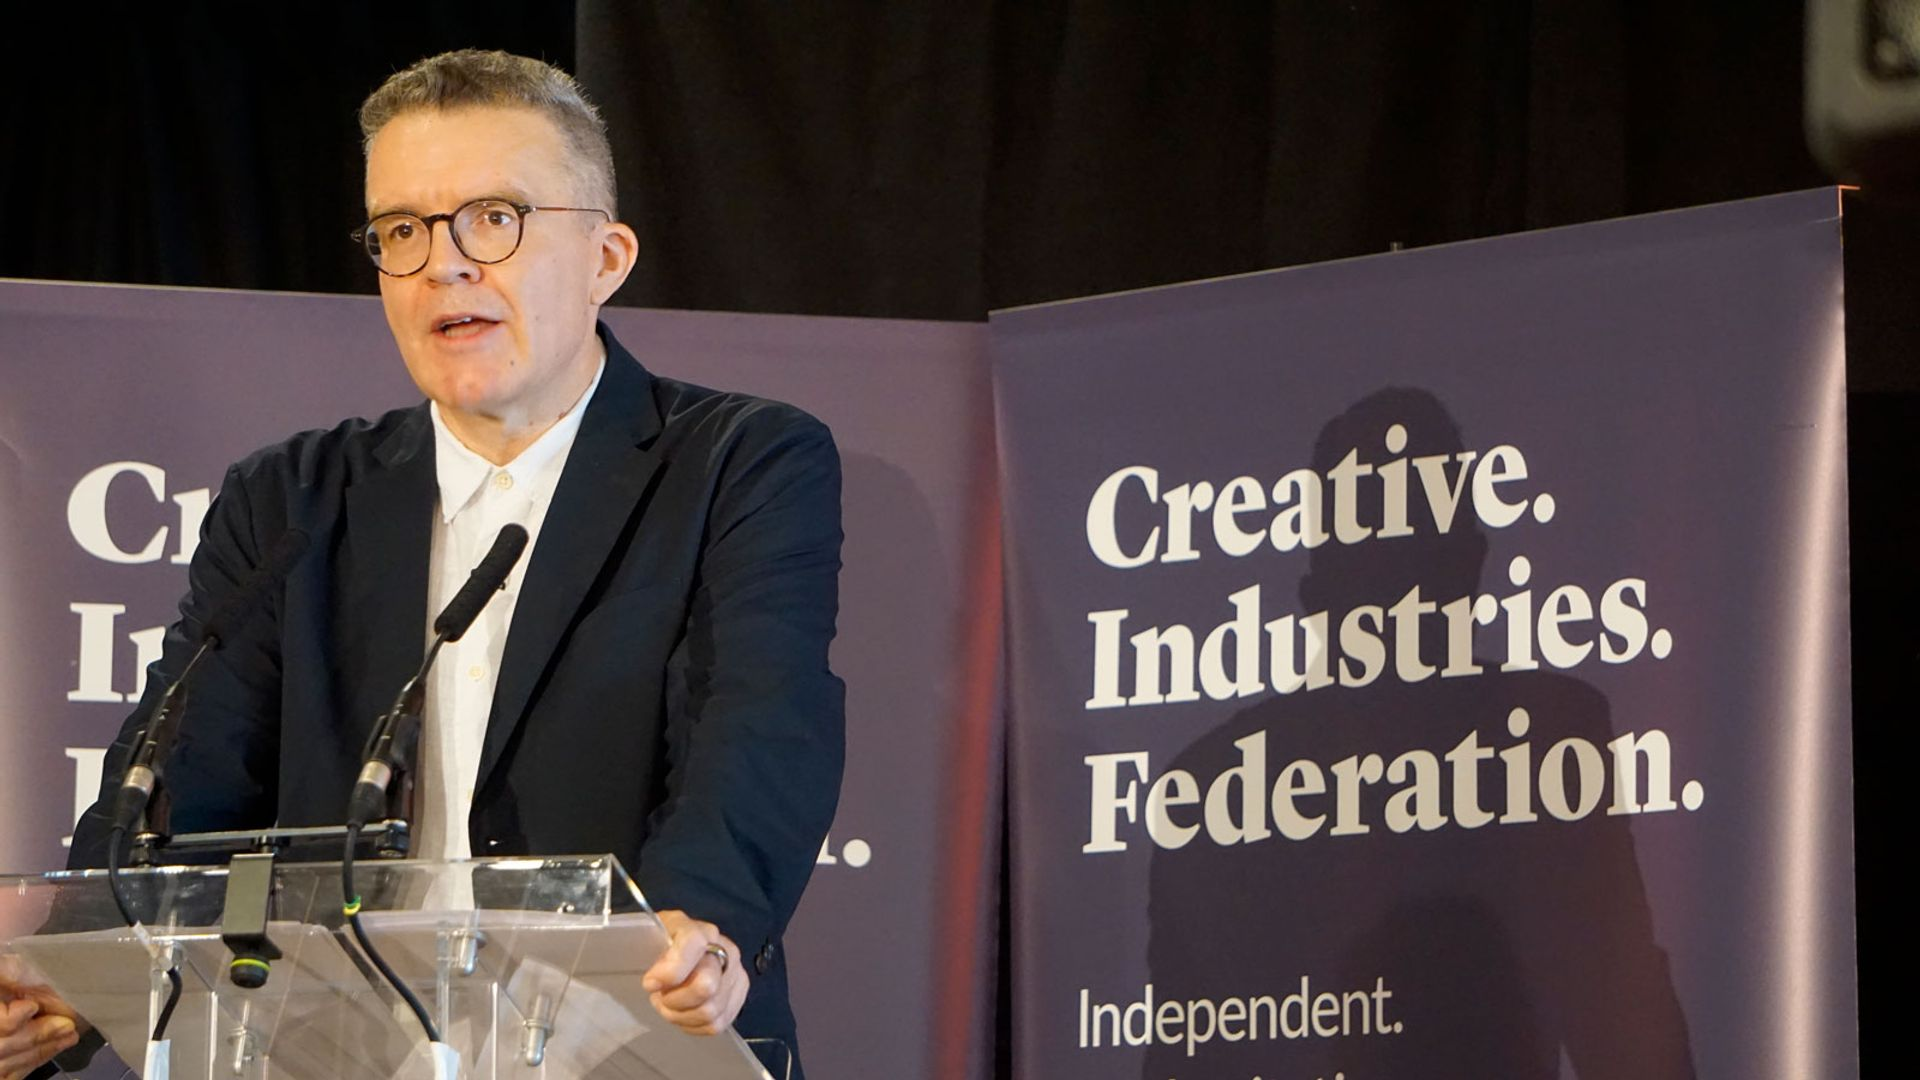 Deputy leader of the Labour Party Tom Watson said that remaining part of Europe is particularly important for the creative industries © Angelica Bomford